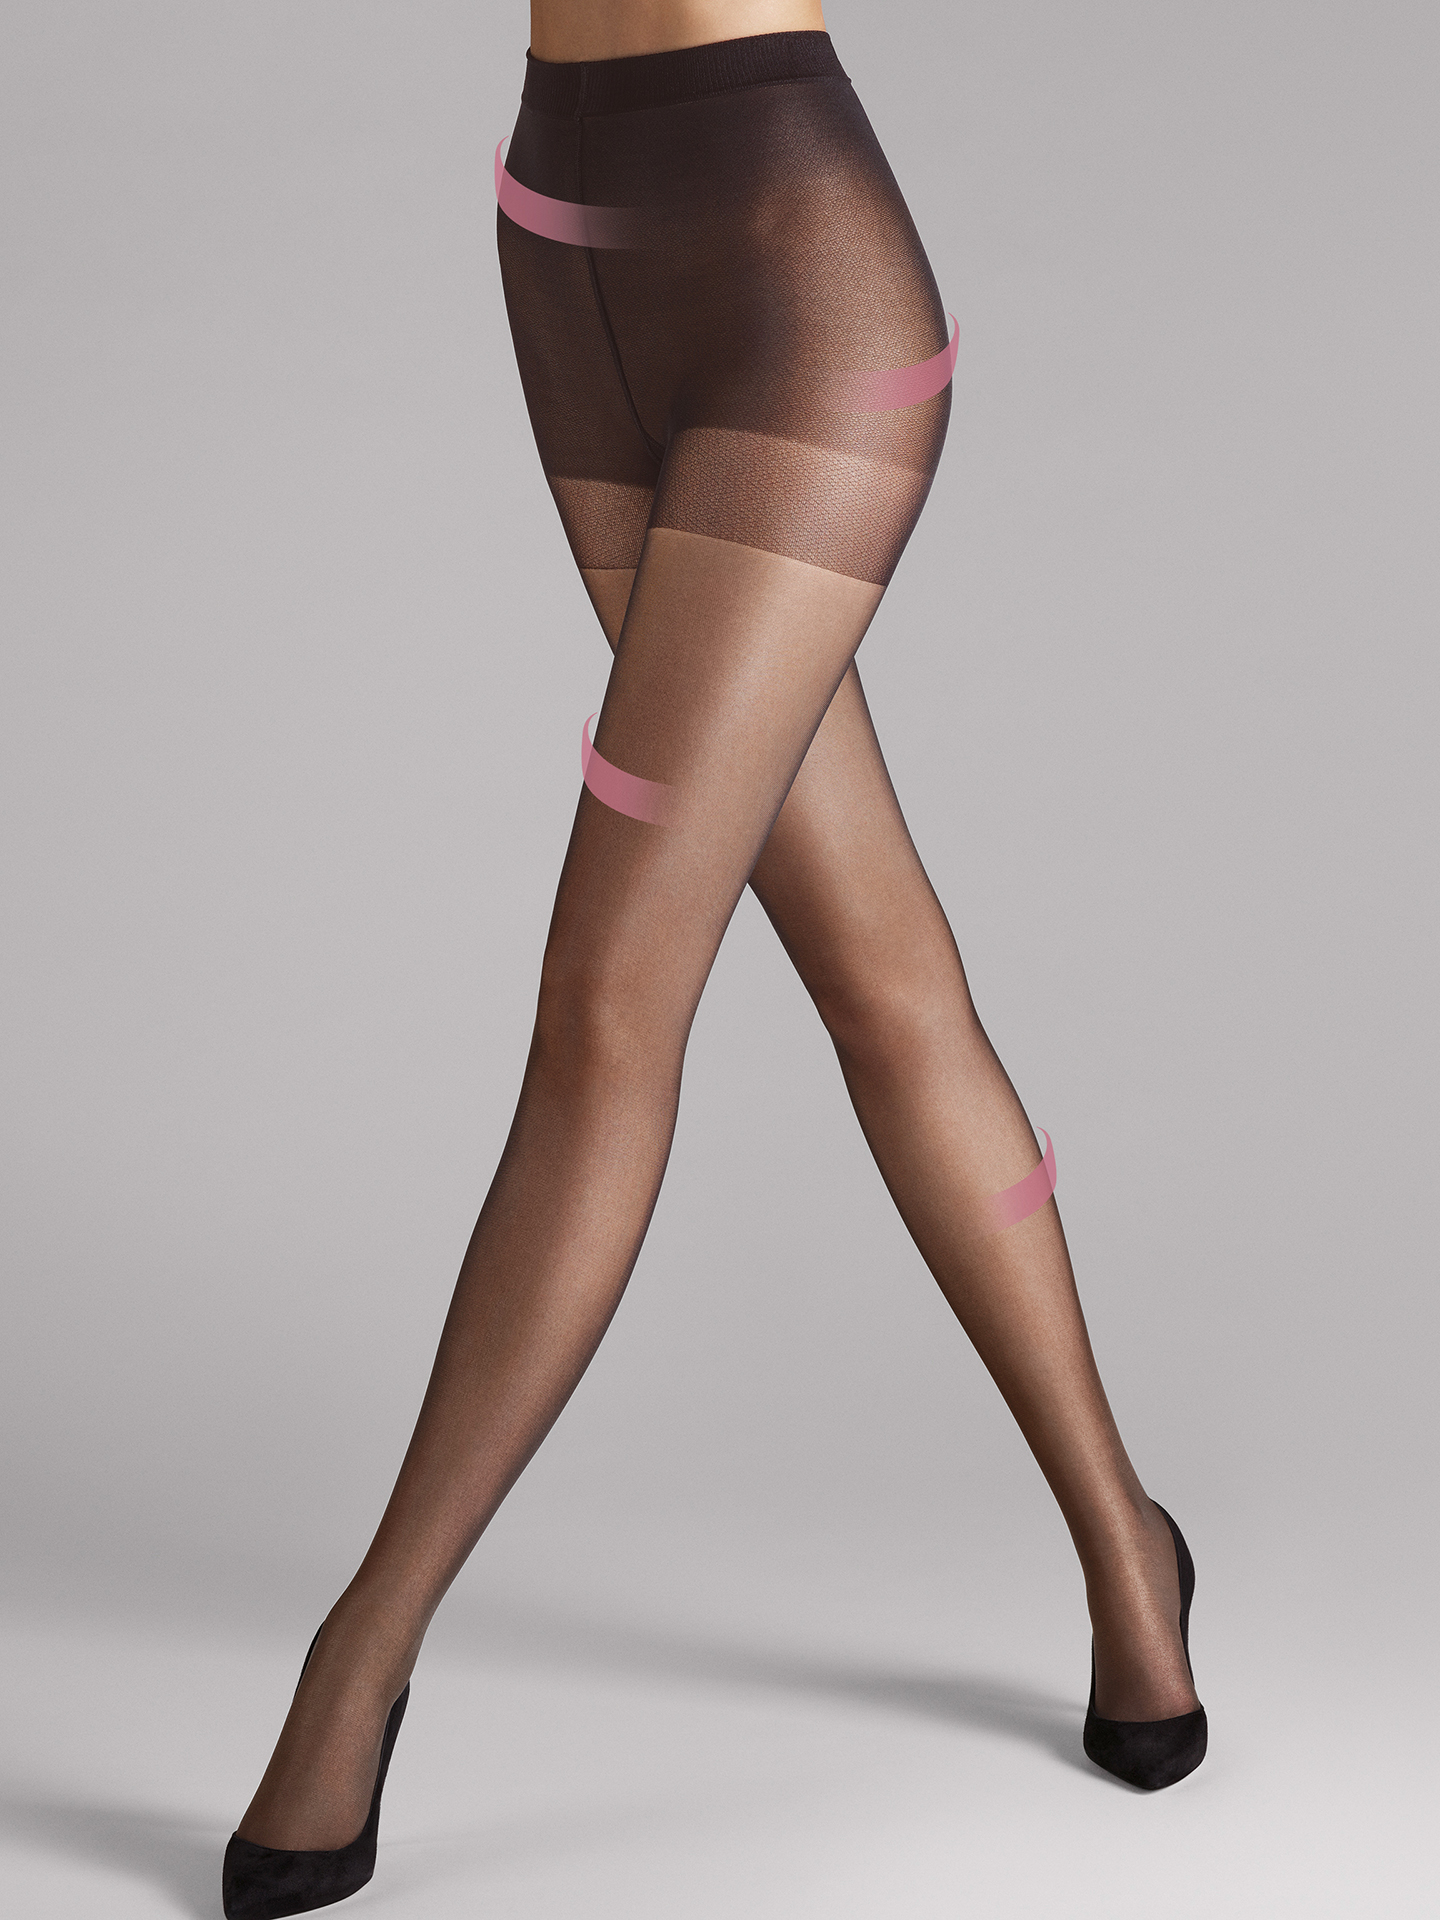 Wolford Apparel & Accessories > Clothing > Collant Miss W 30 leg support - 7212 - S